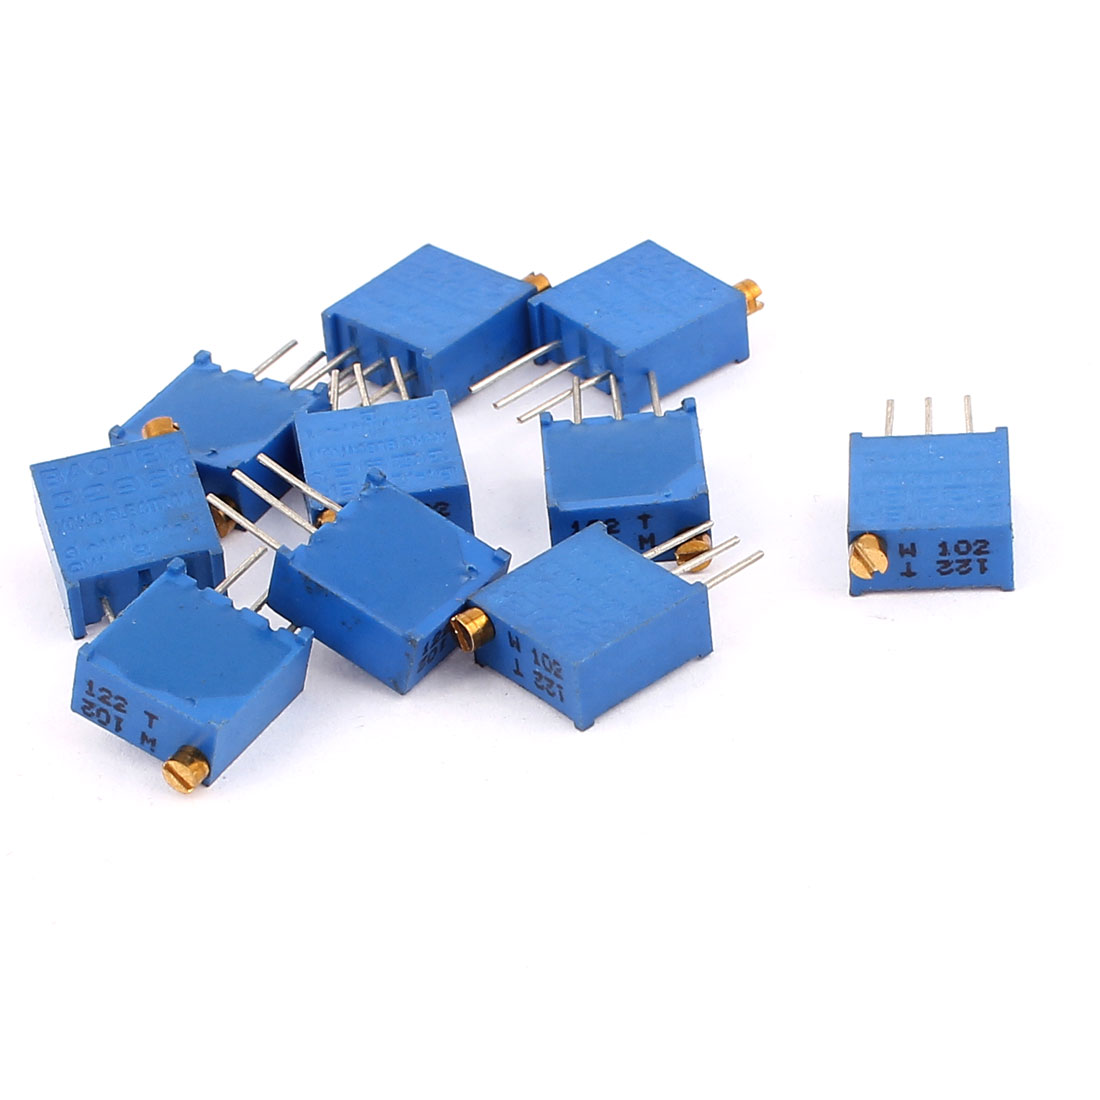 10 Pcs 3296W 1K ohm Multiturn Potentiometer Pot Variable Resistor